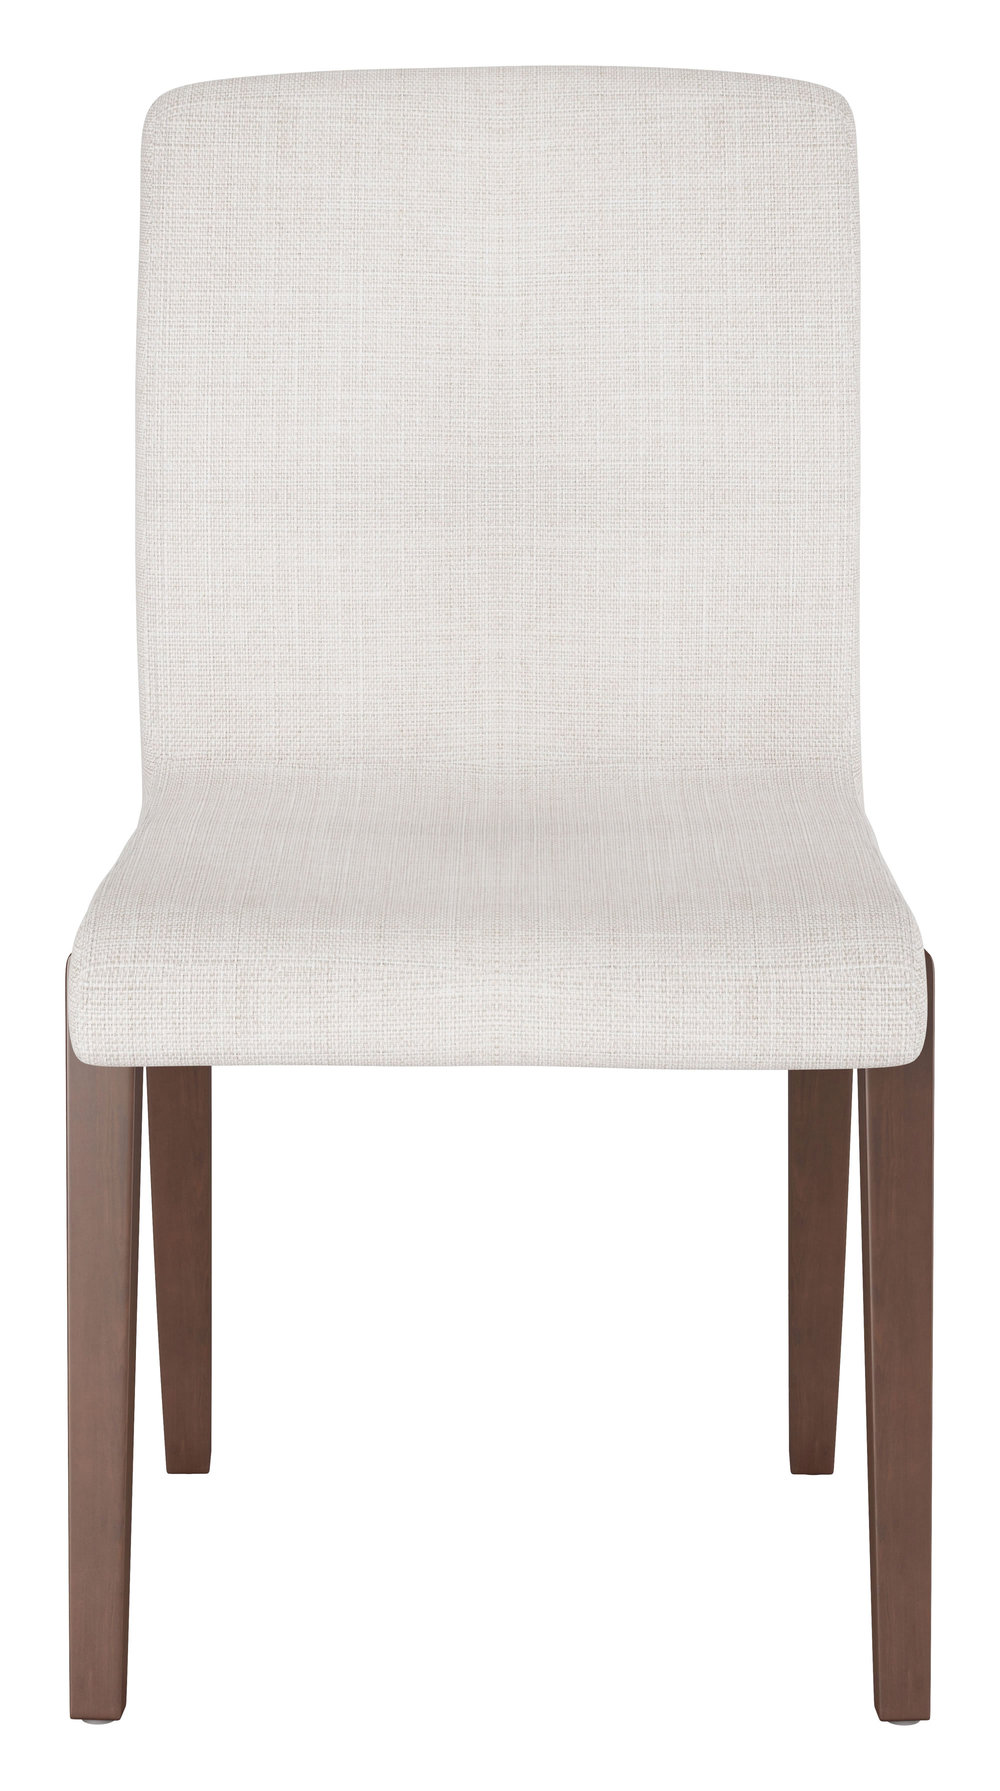 Zuo Modern Contemporary - Hamilton Dining Chair - Set of 2 - Beige